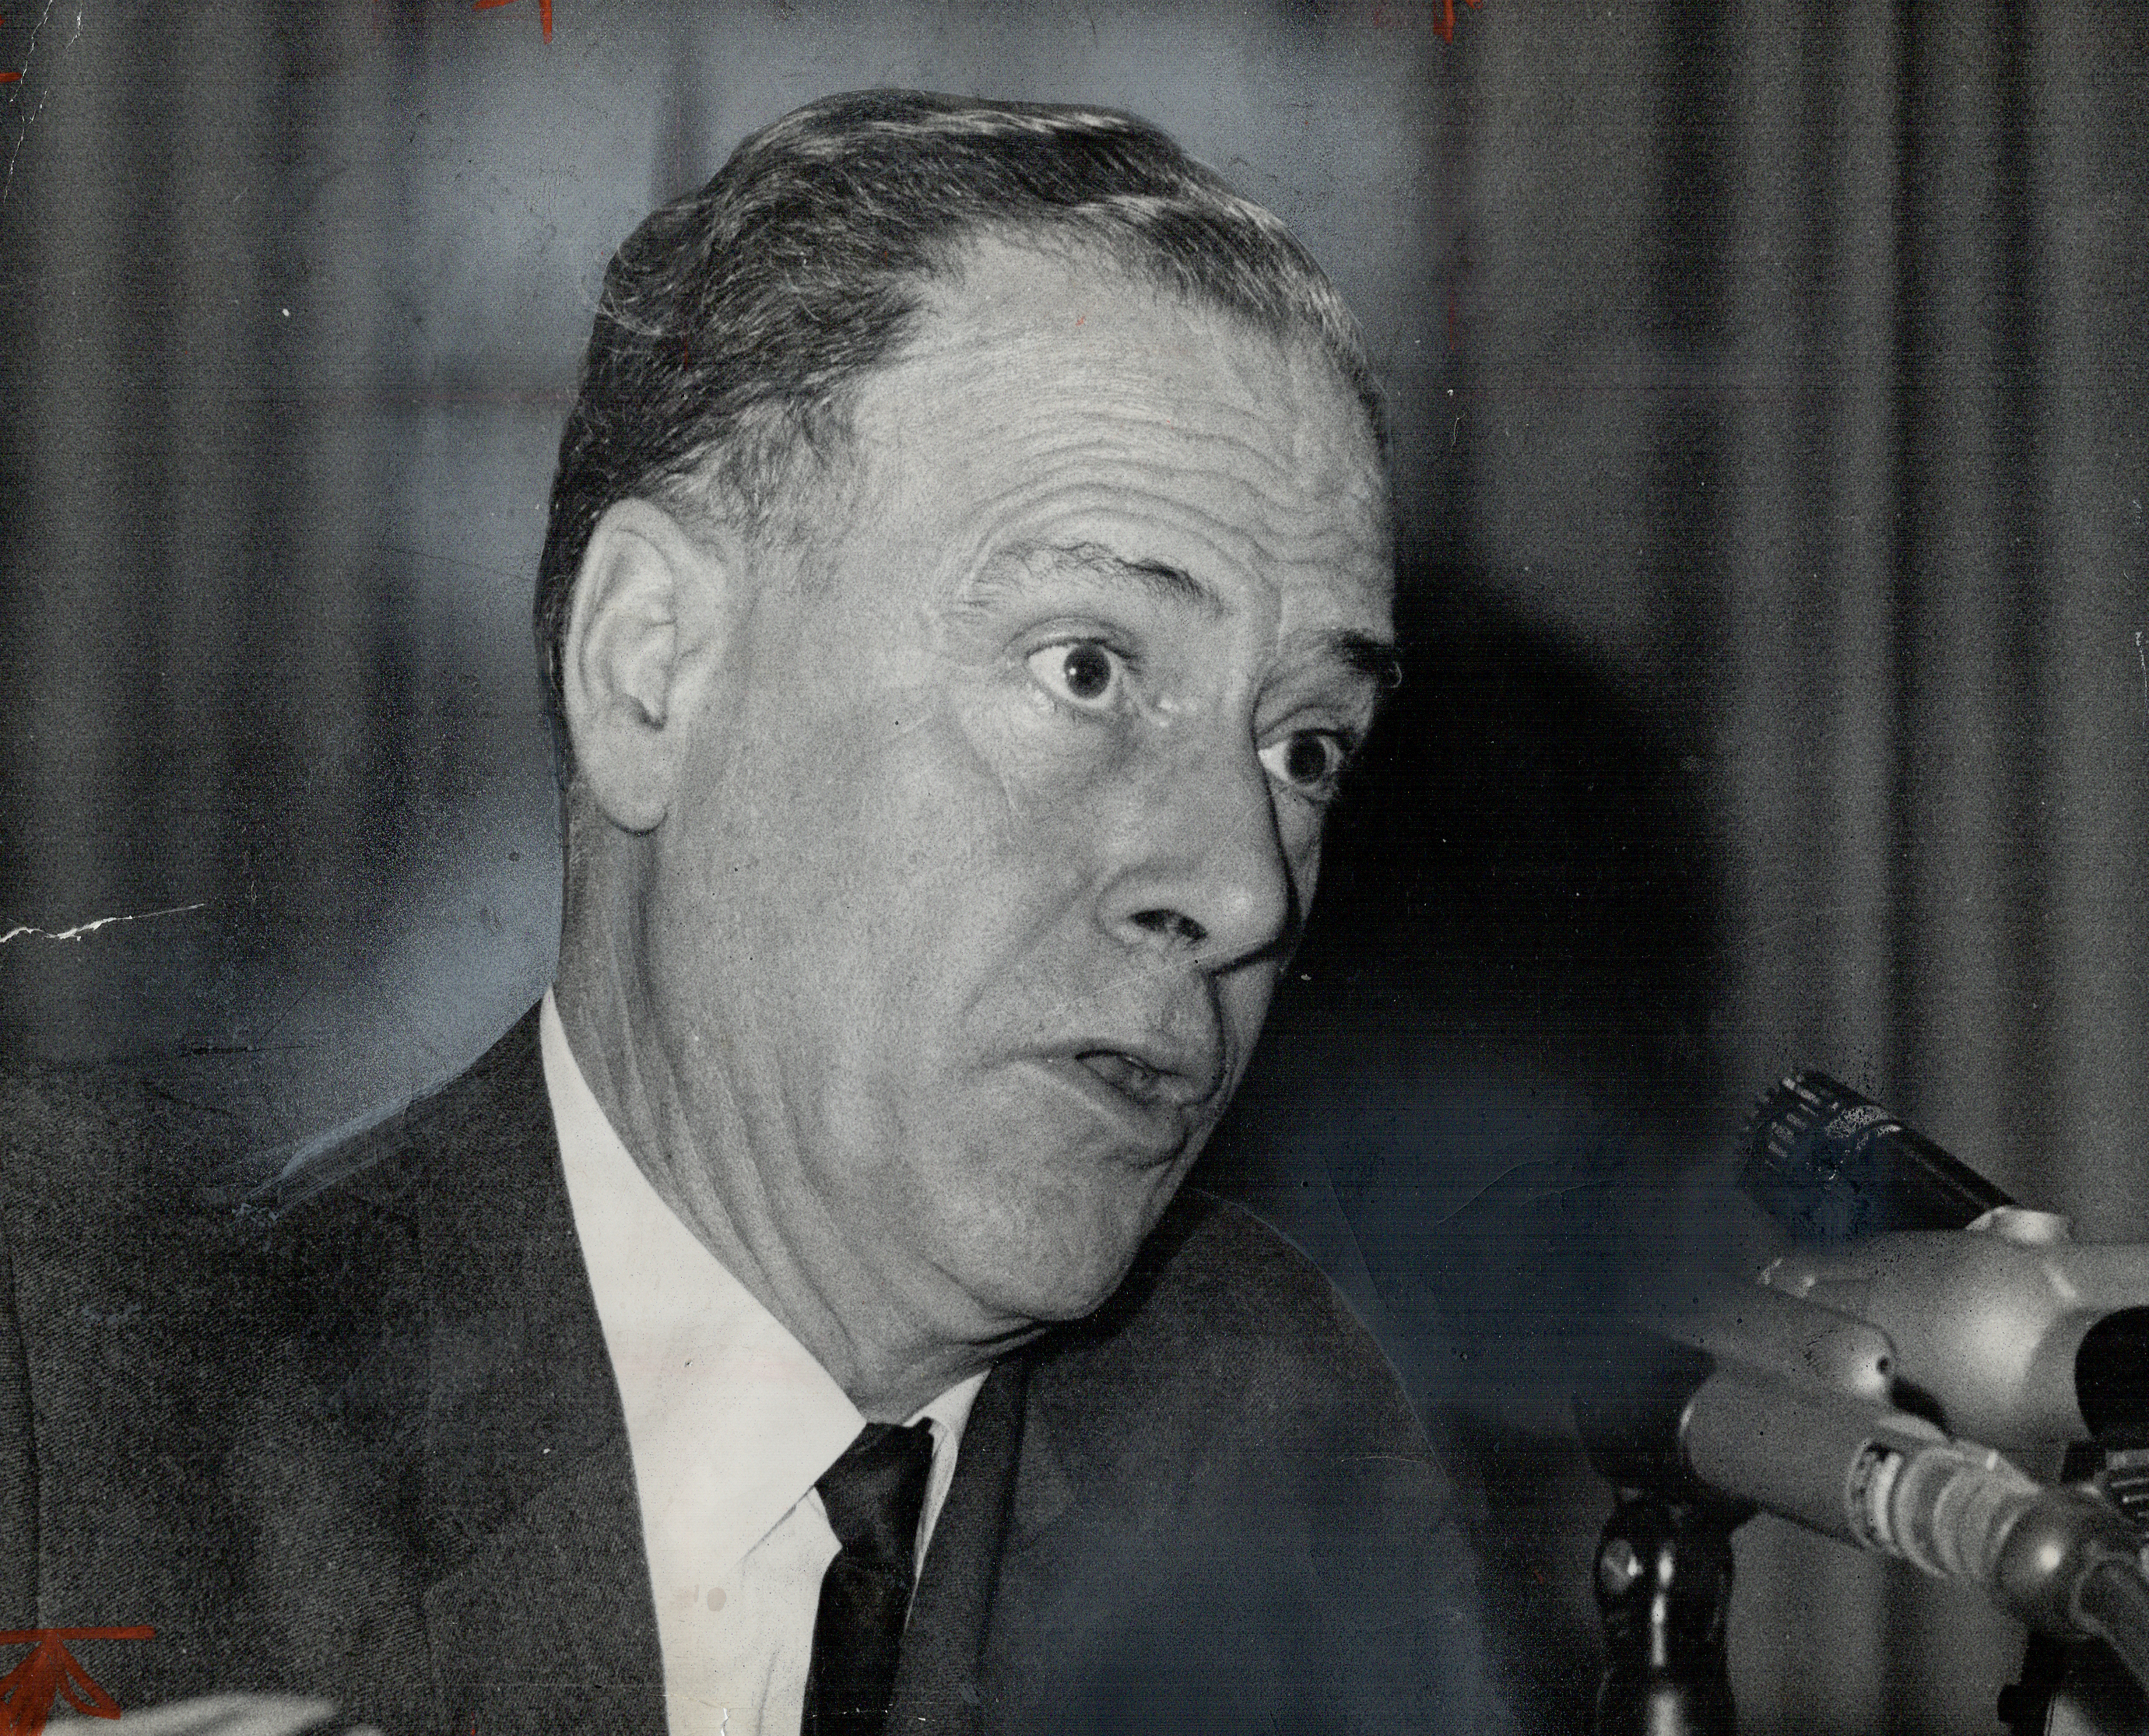 Marshall McLuhan, author and expert on communications, in Toronto on Sept. 28, 1966.